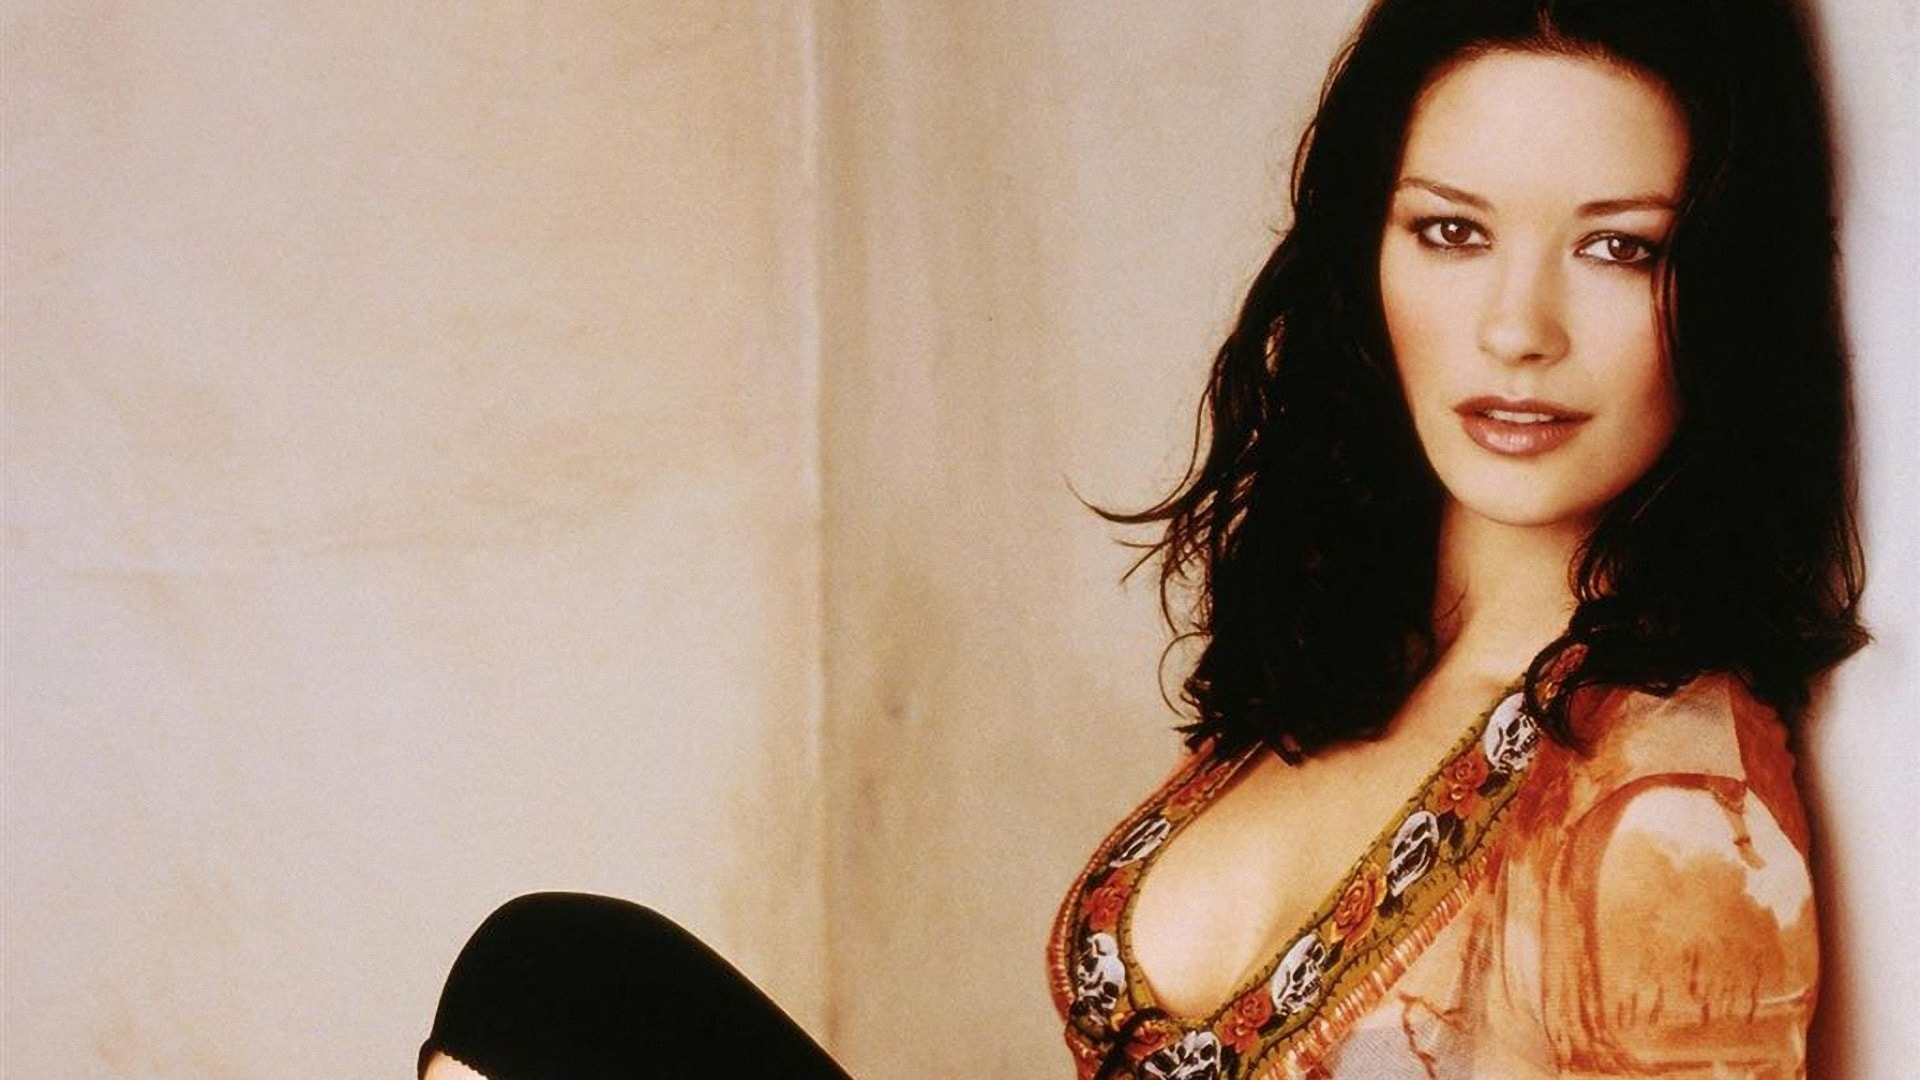 Catherine Zeta-Jones desktop wallpaper